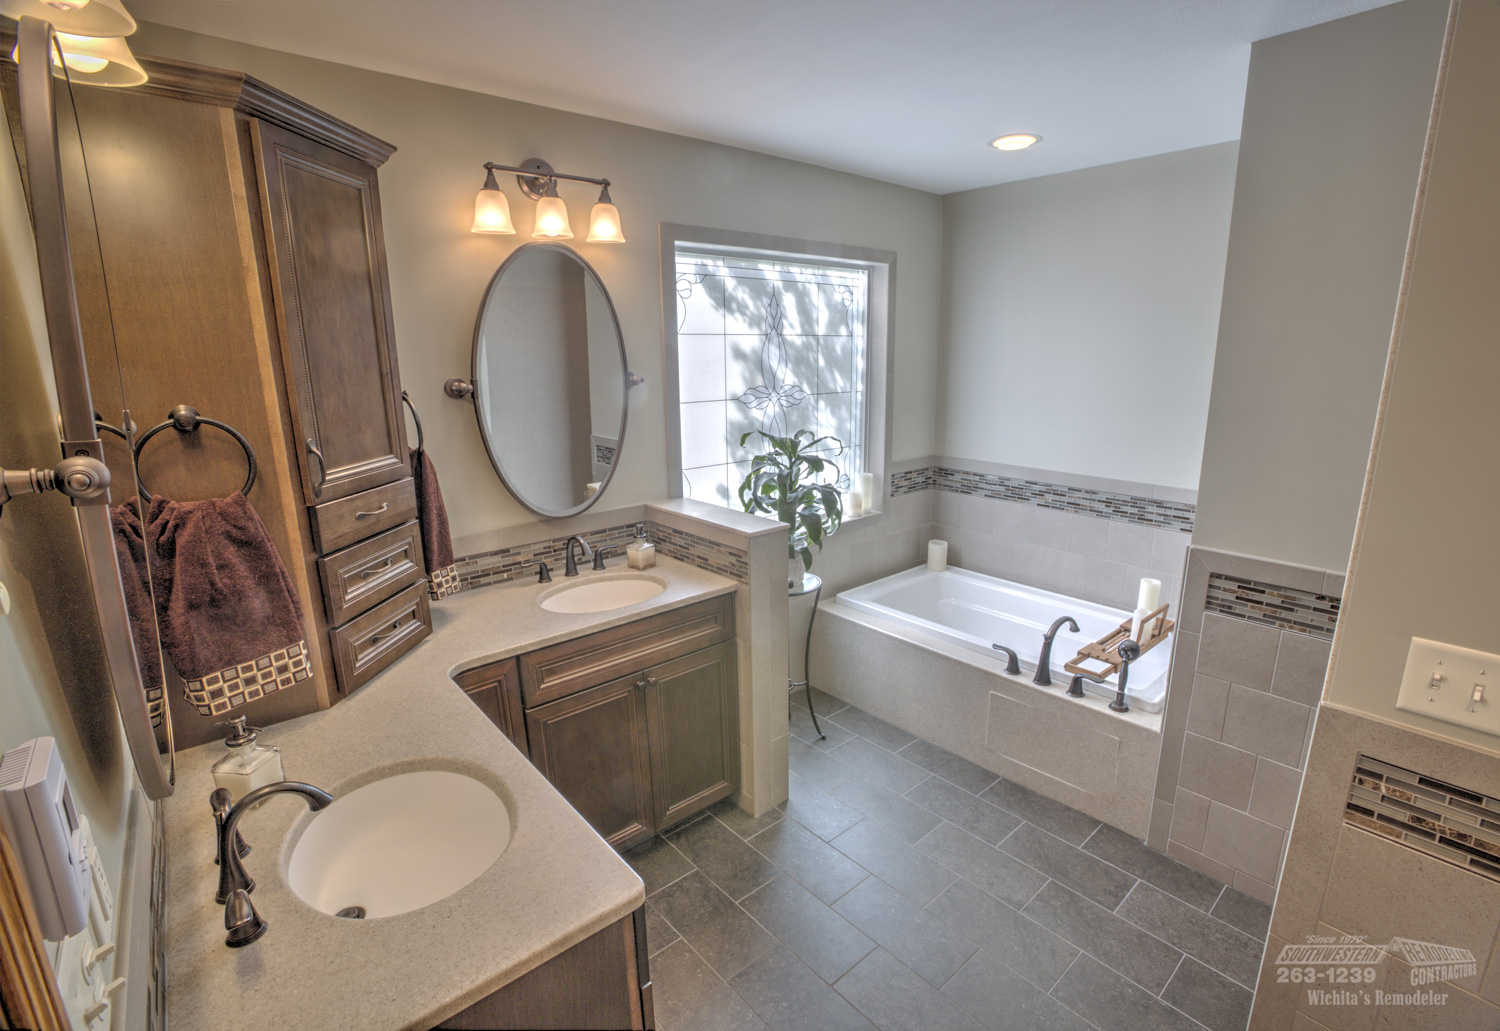 3. Bathroom Remodeling Wichita Home Remodeler